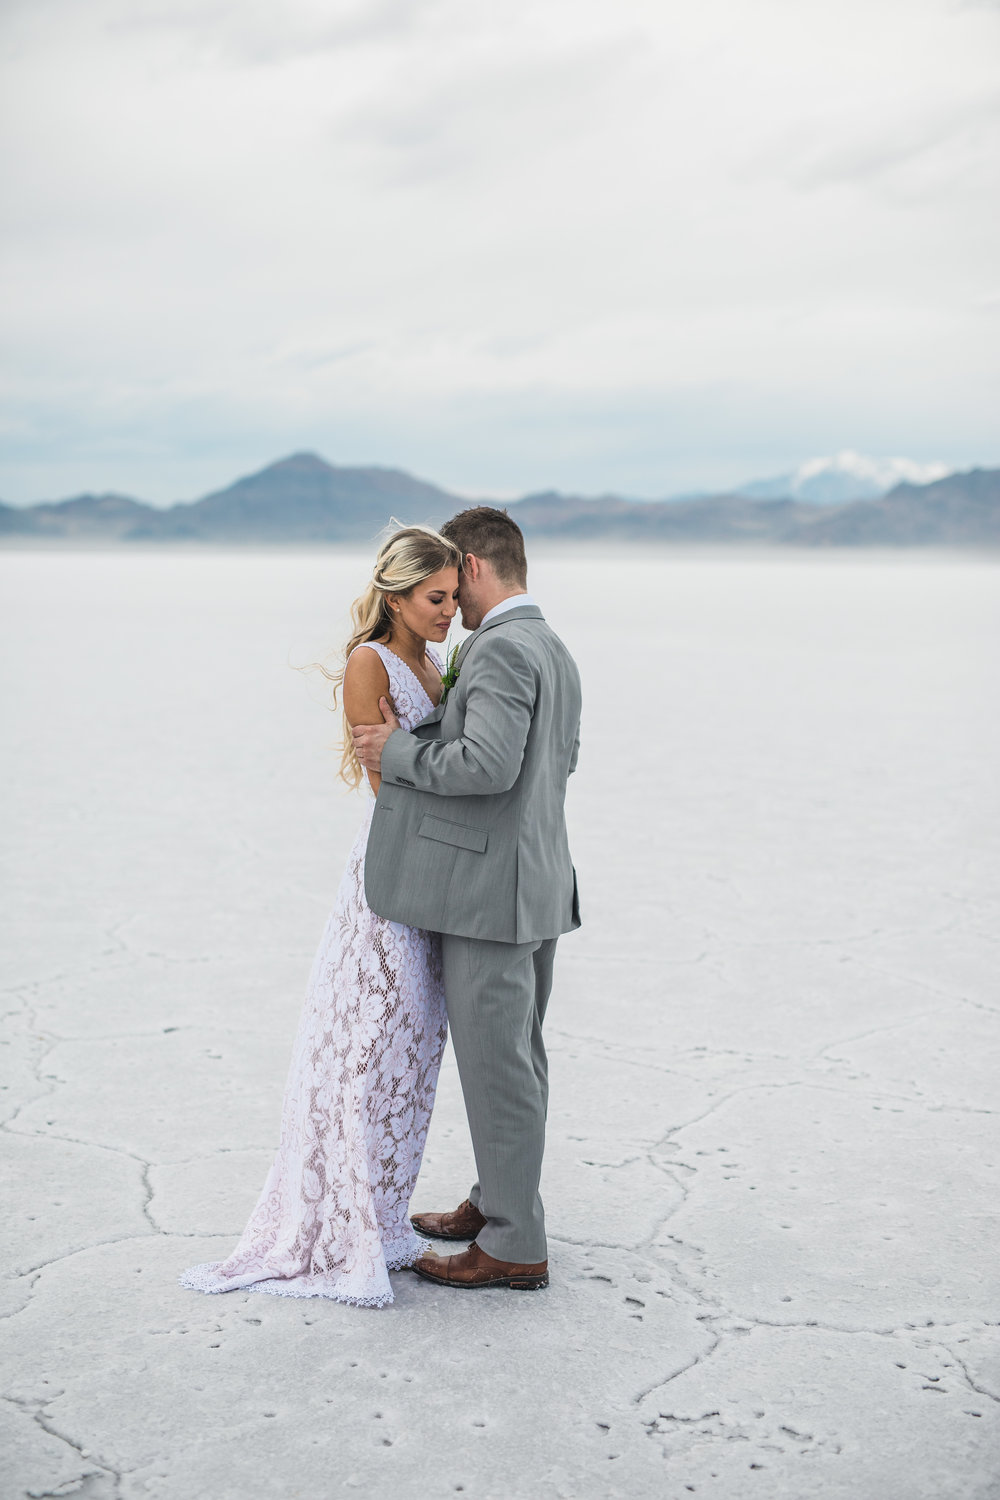 Saldana vintage wedding dress adventure wedding photography Bonneville Salt Flats